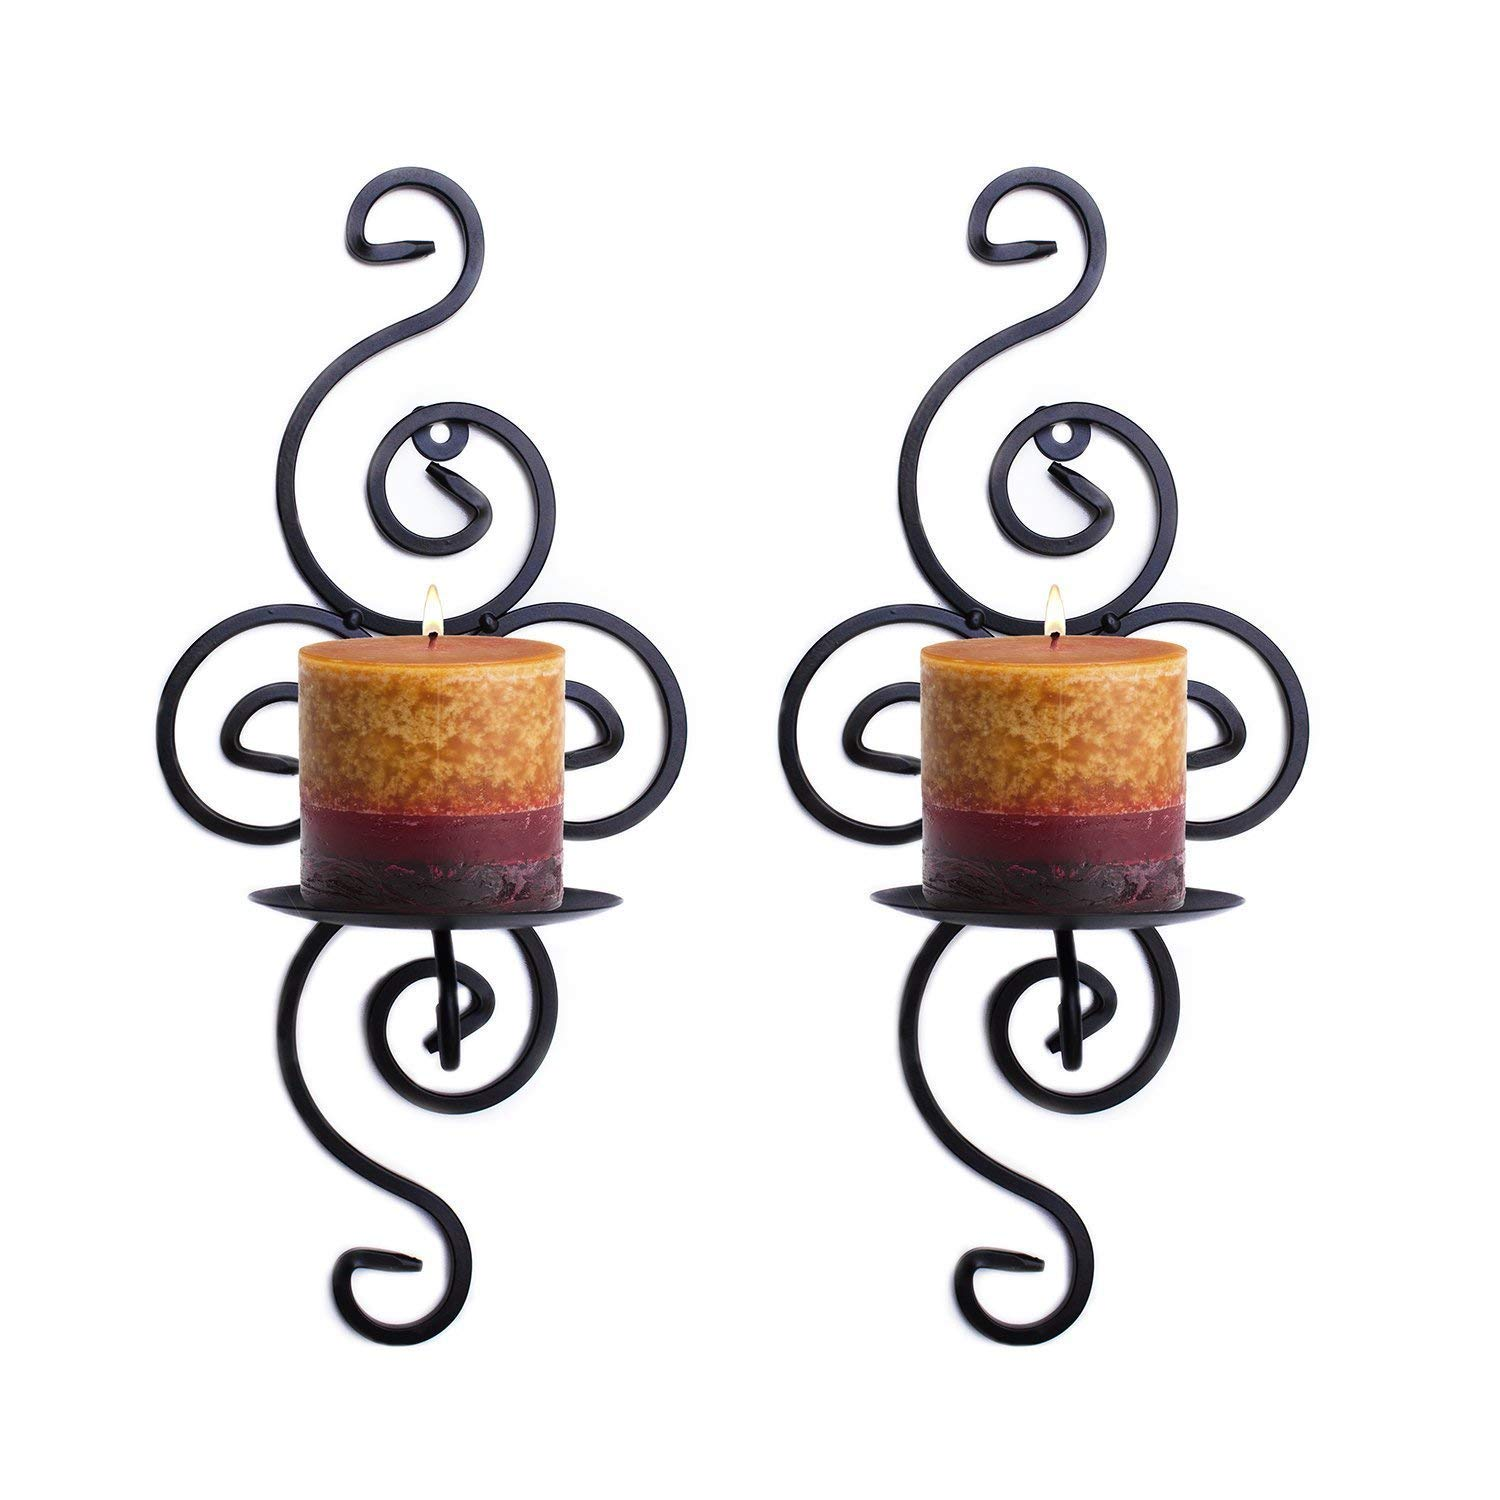 Pasutewel Wall Candle Sconces,Set of 2 Metal Rustic Swirling Hanging Wall Candle Holders Decor for Living Room Home Decorations,Weddings,Events (Black)